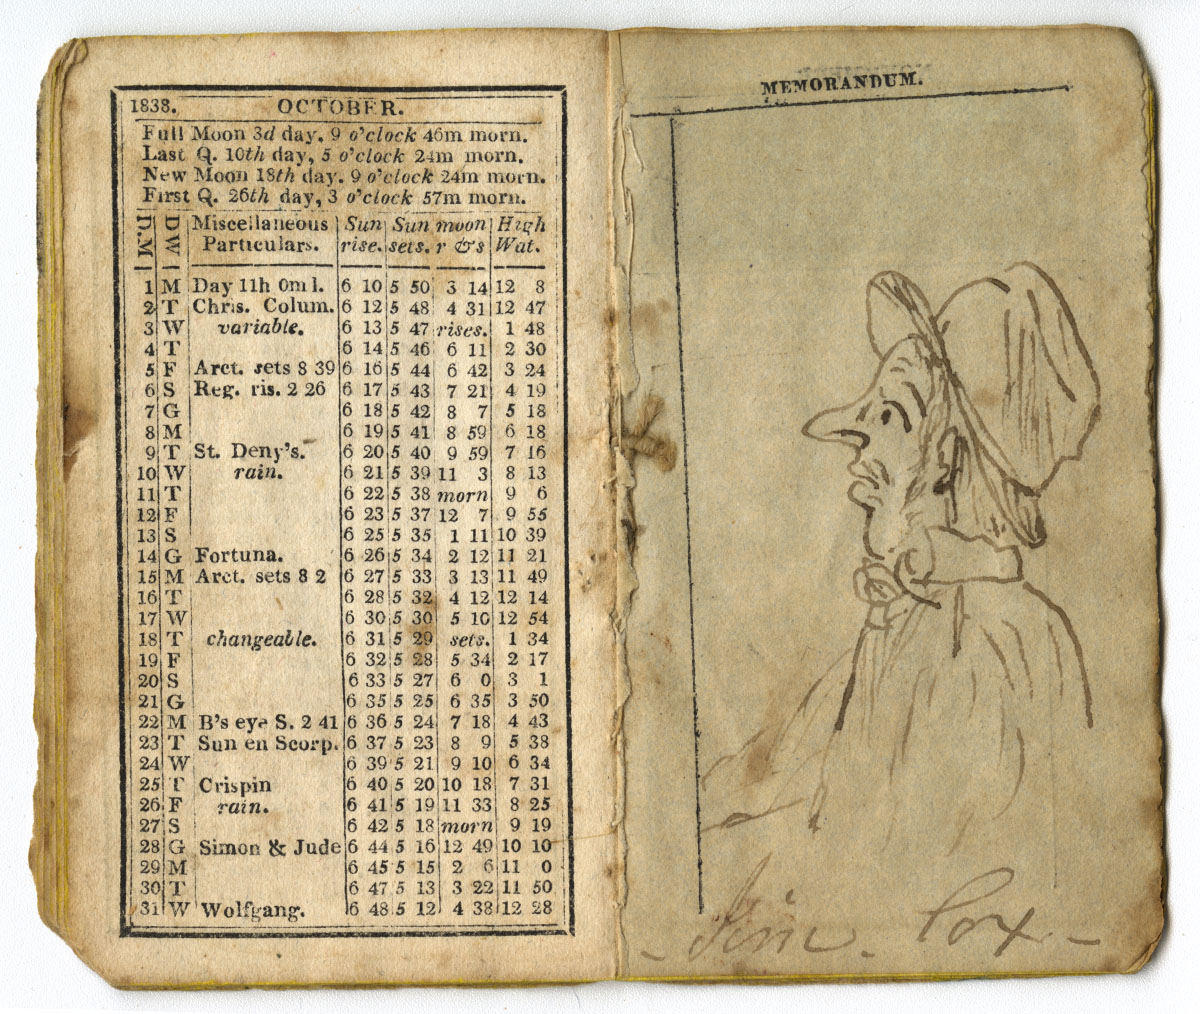 Johnson's Pocket Almanac, for the Year of Our Lord 1838 (Philadelphia, 1837). Gift of Helen Beitler.